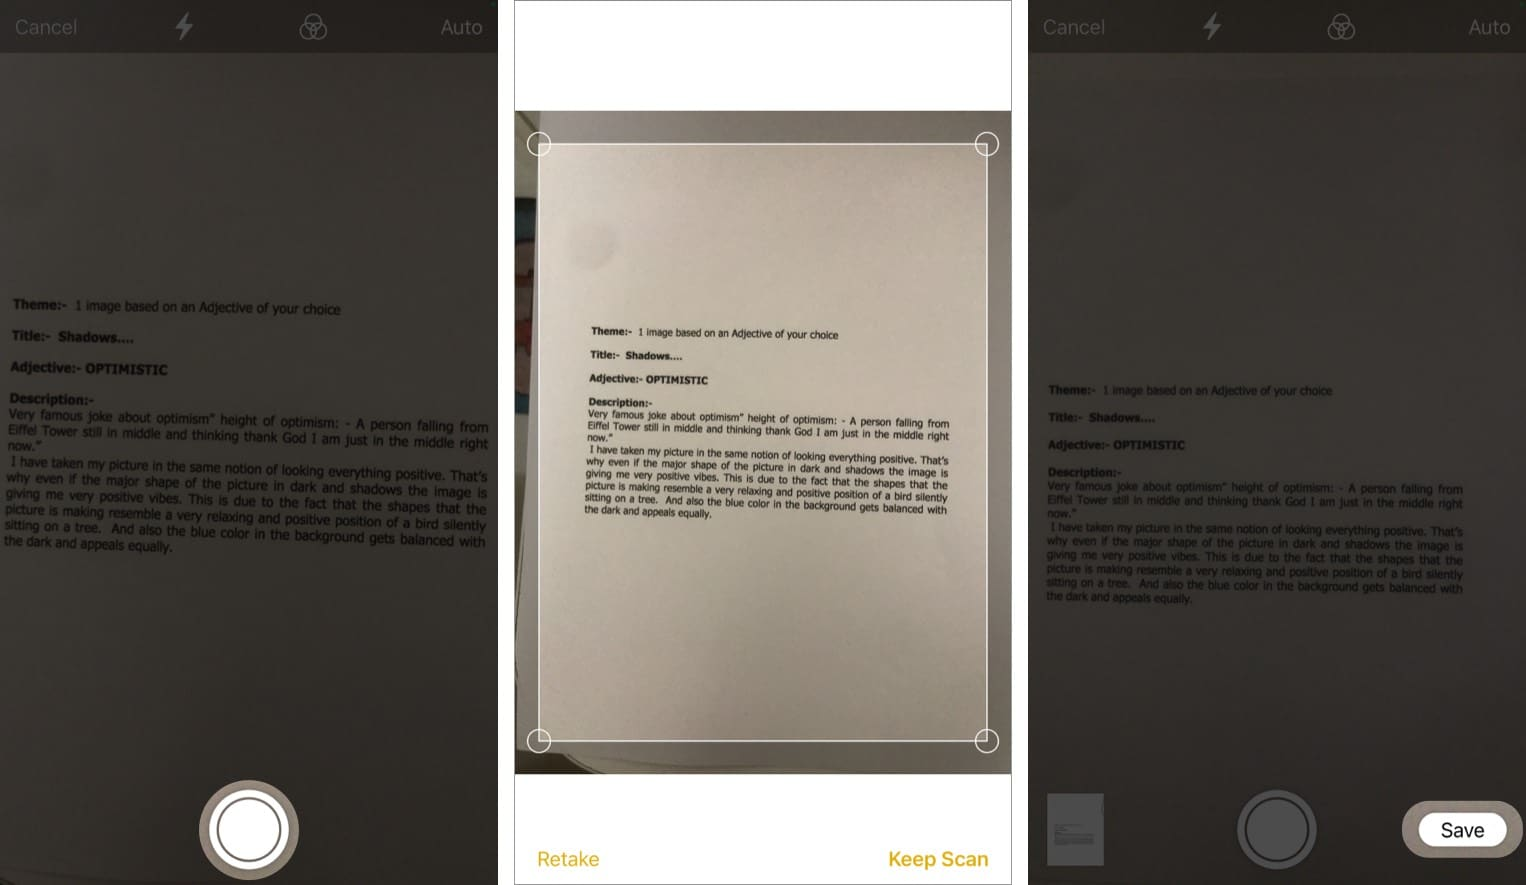 Save scanned document from notes app in iPhone